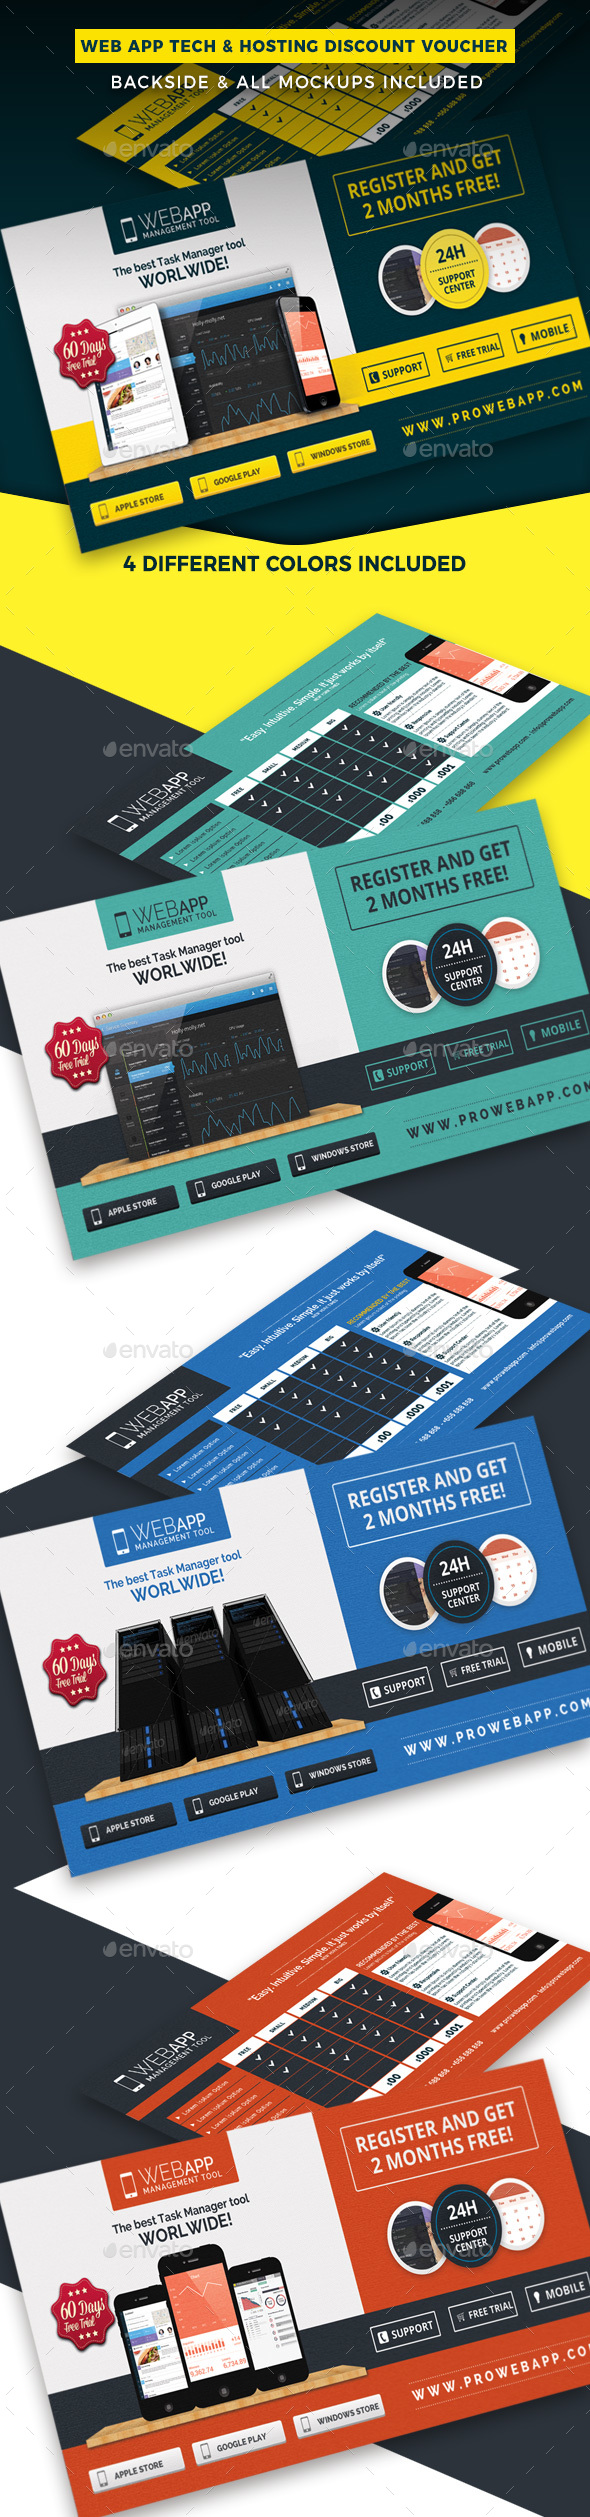 Web App Tech and Hosting Voucher Template